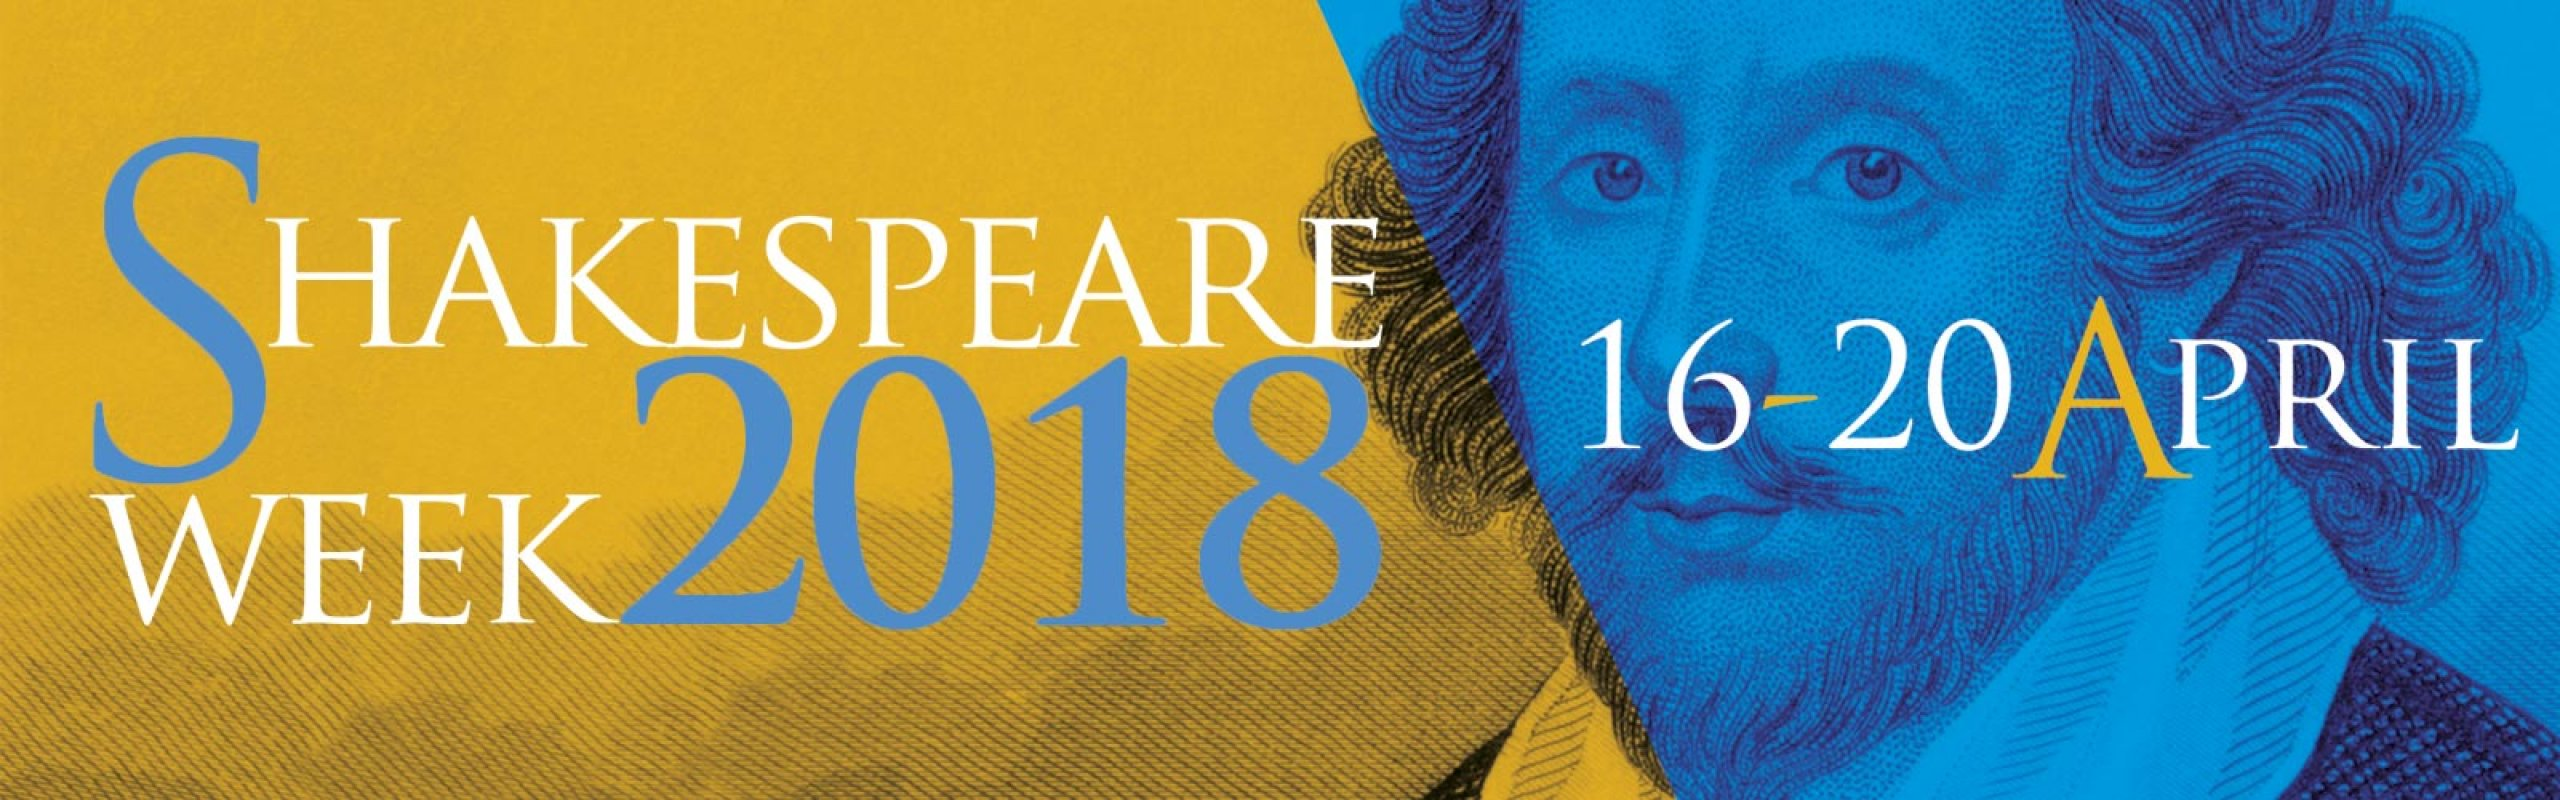 Shakespeare Week 2018